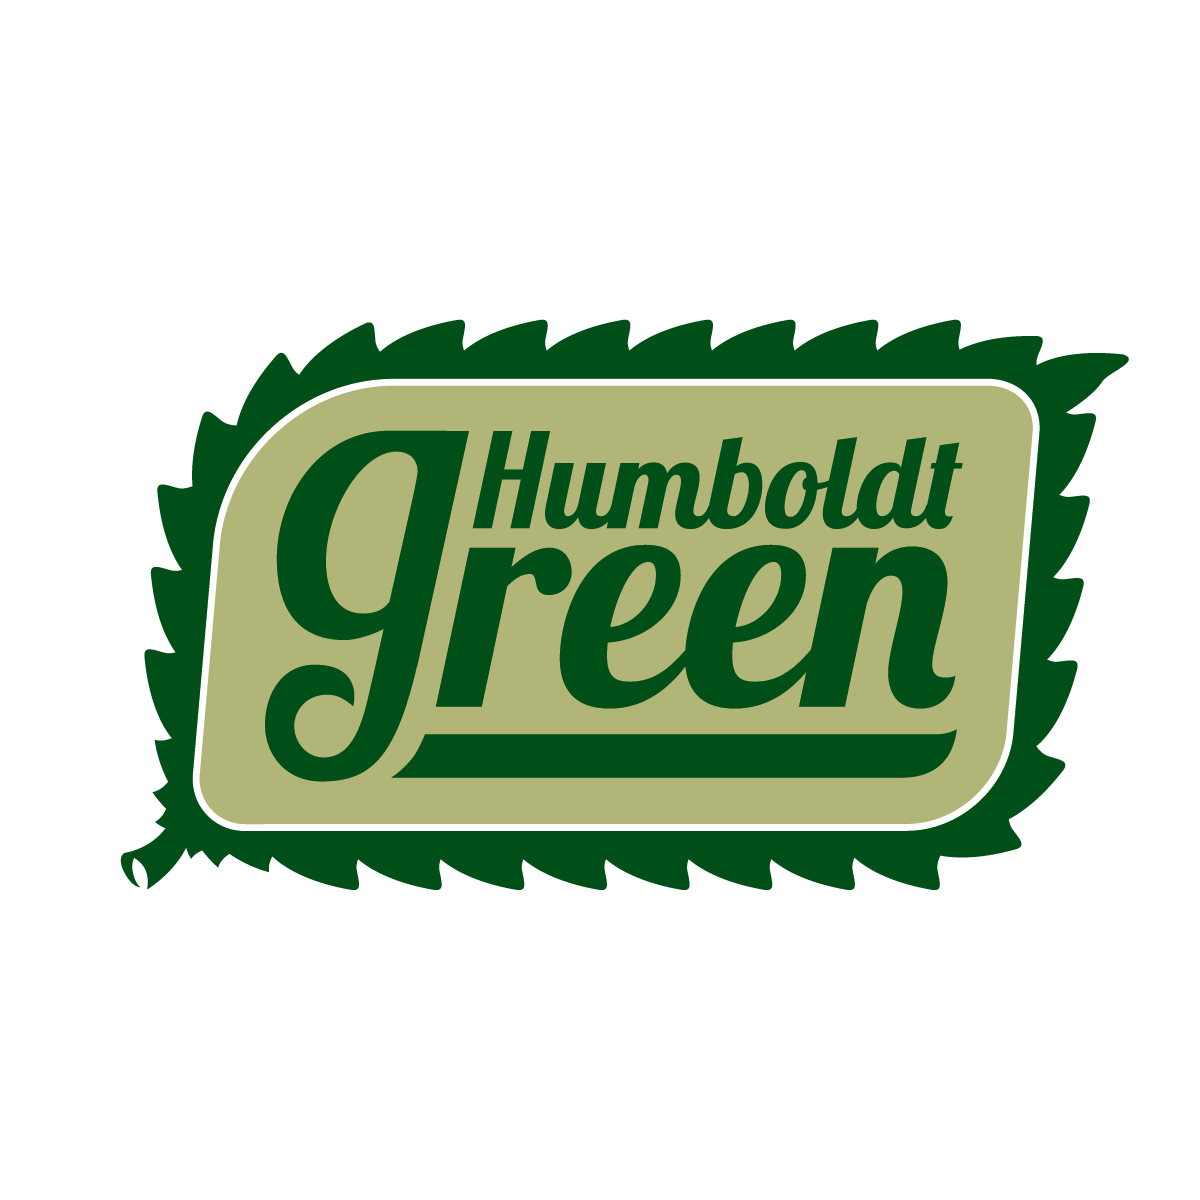 The Humboldt Green Logo